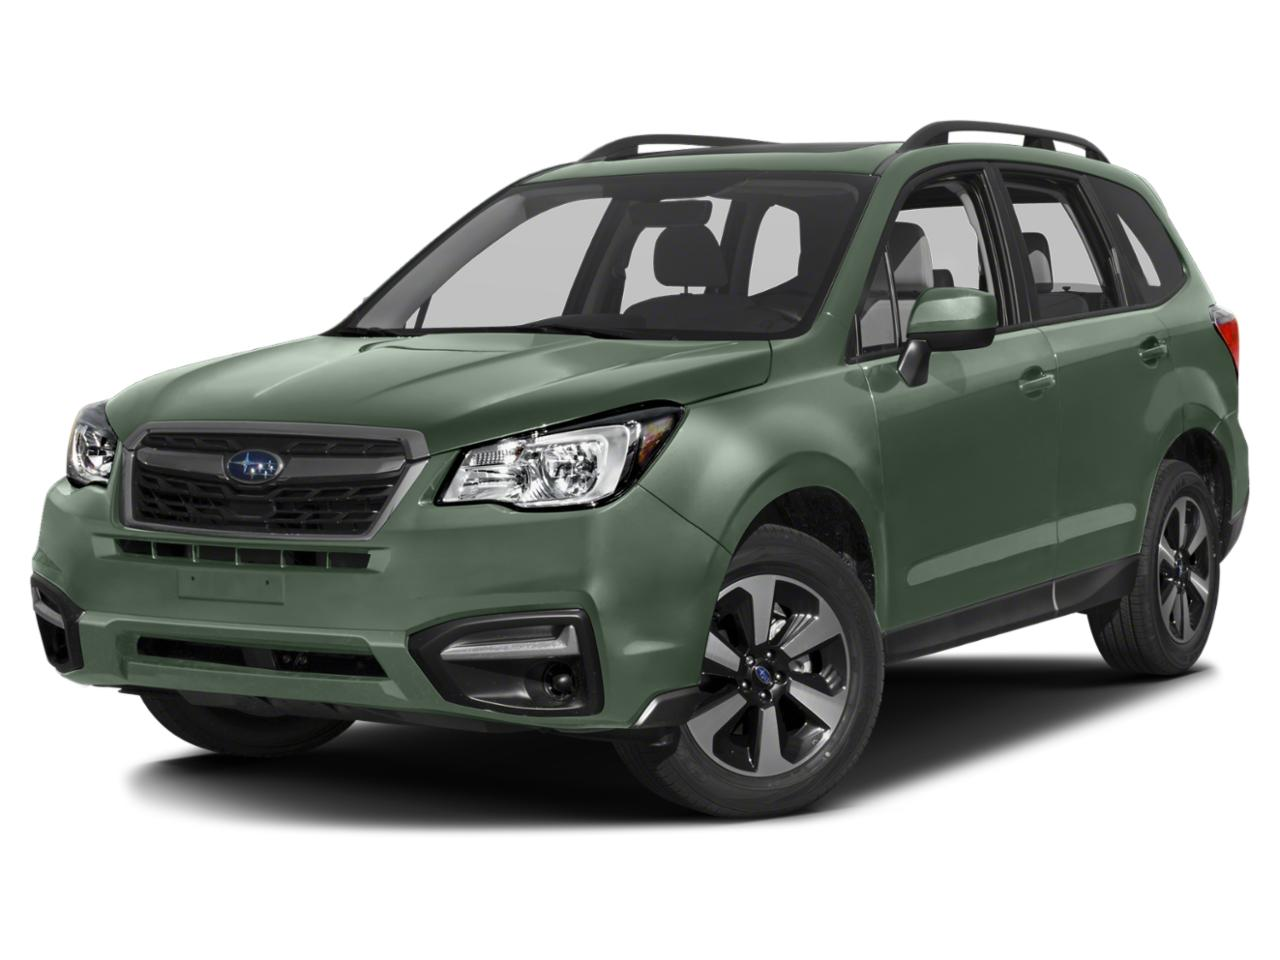 2018 Subaru Forester Vehicle Photo in Portland, OR 97225